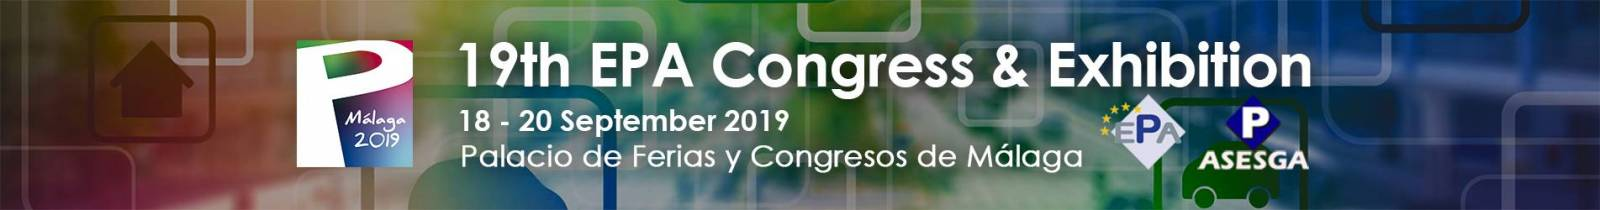 Orbility at the EPA 2019 Congress in Malaga Spain